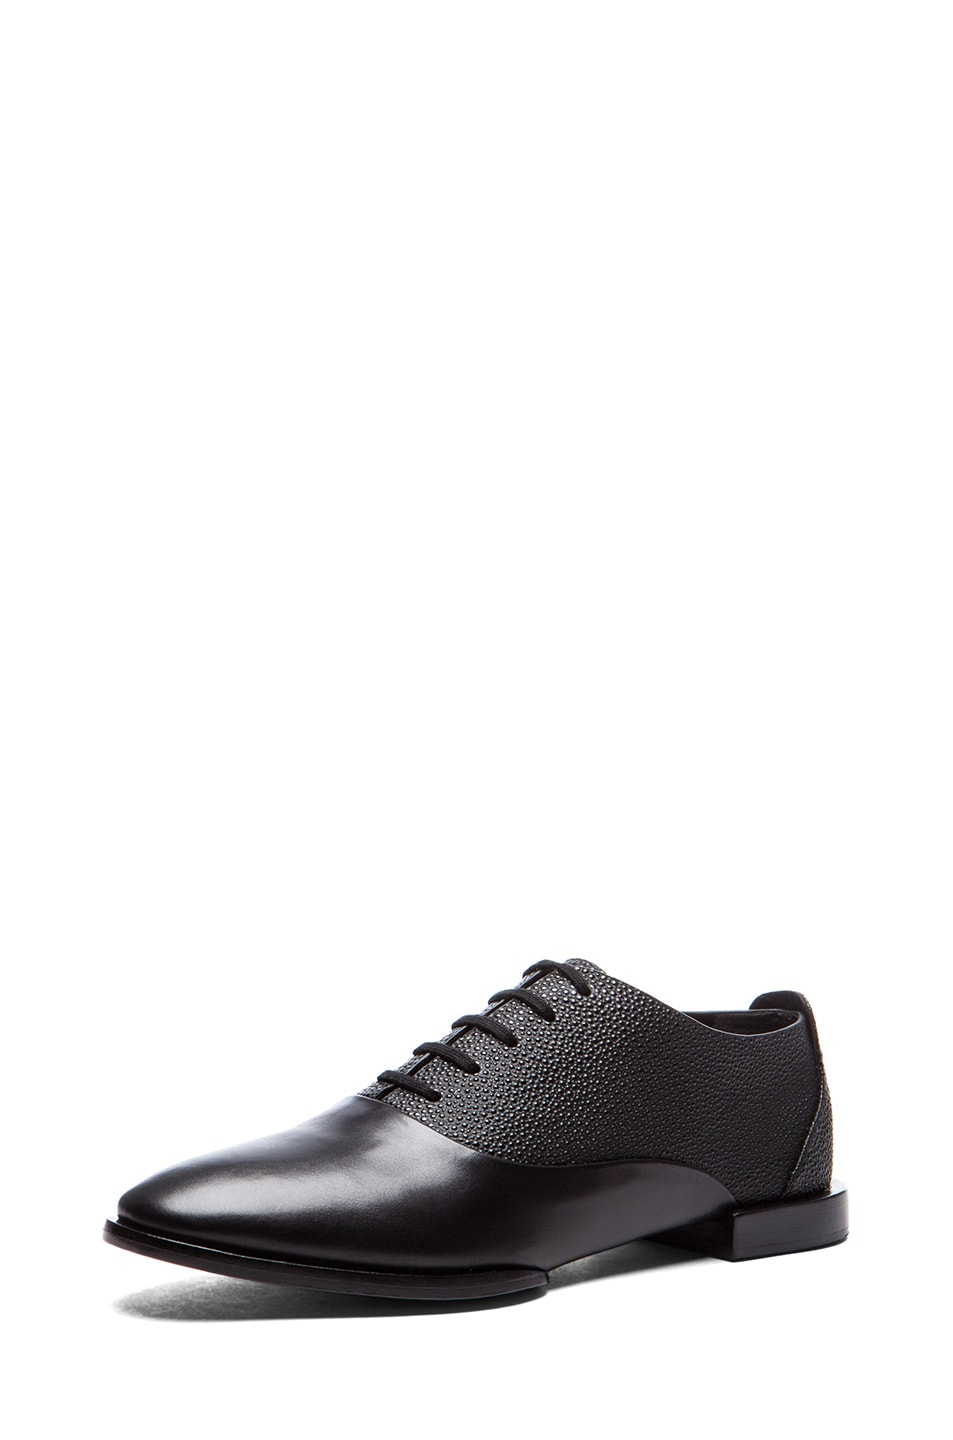 Image 2 of Alexander Wang Ingrid Leather Oxfords in Black